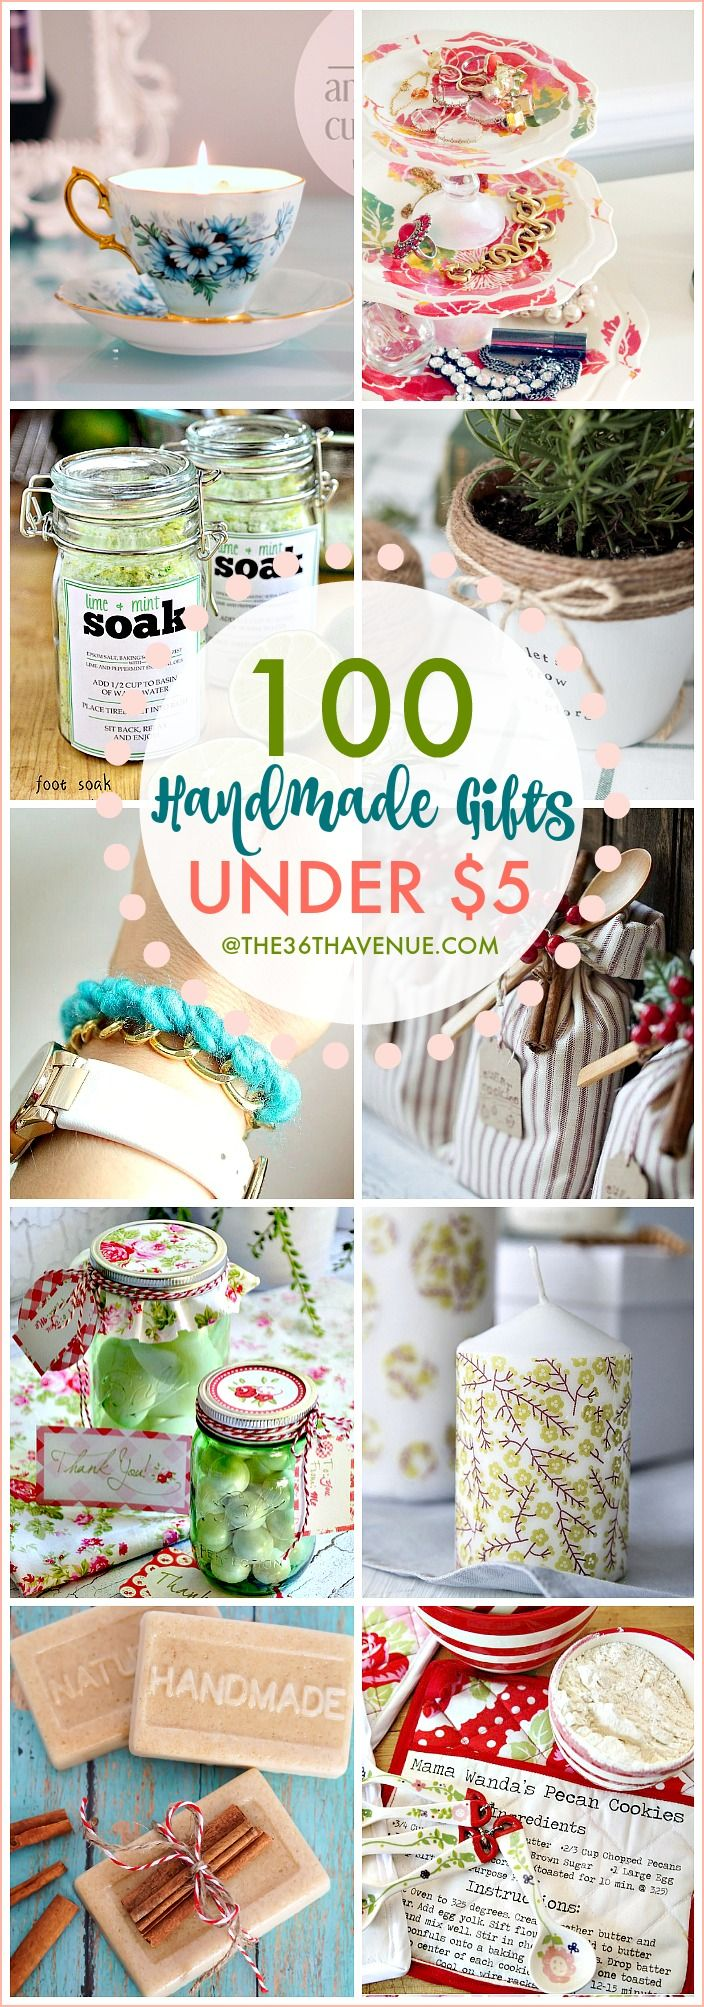 Top 10 Handmade Gifts Using Photos